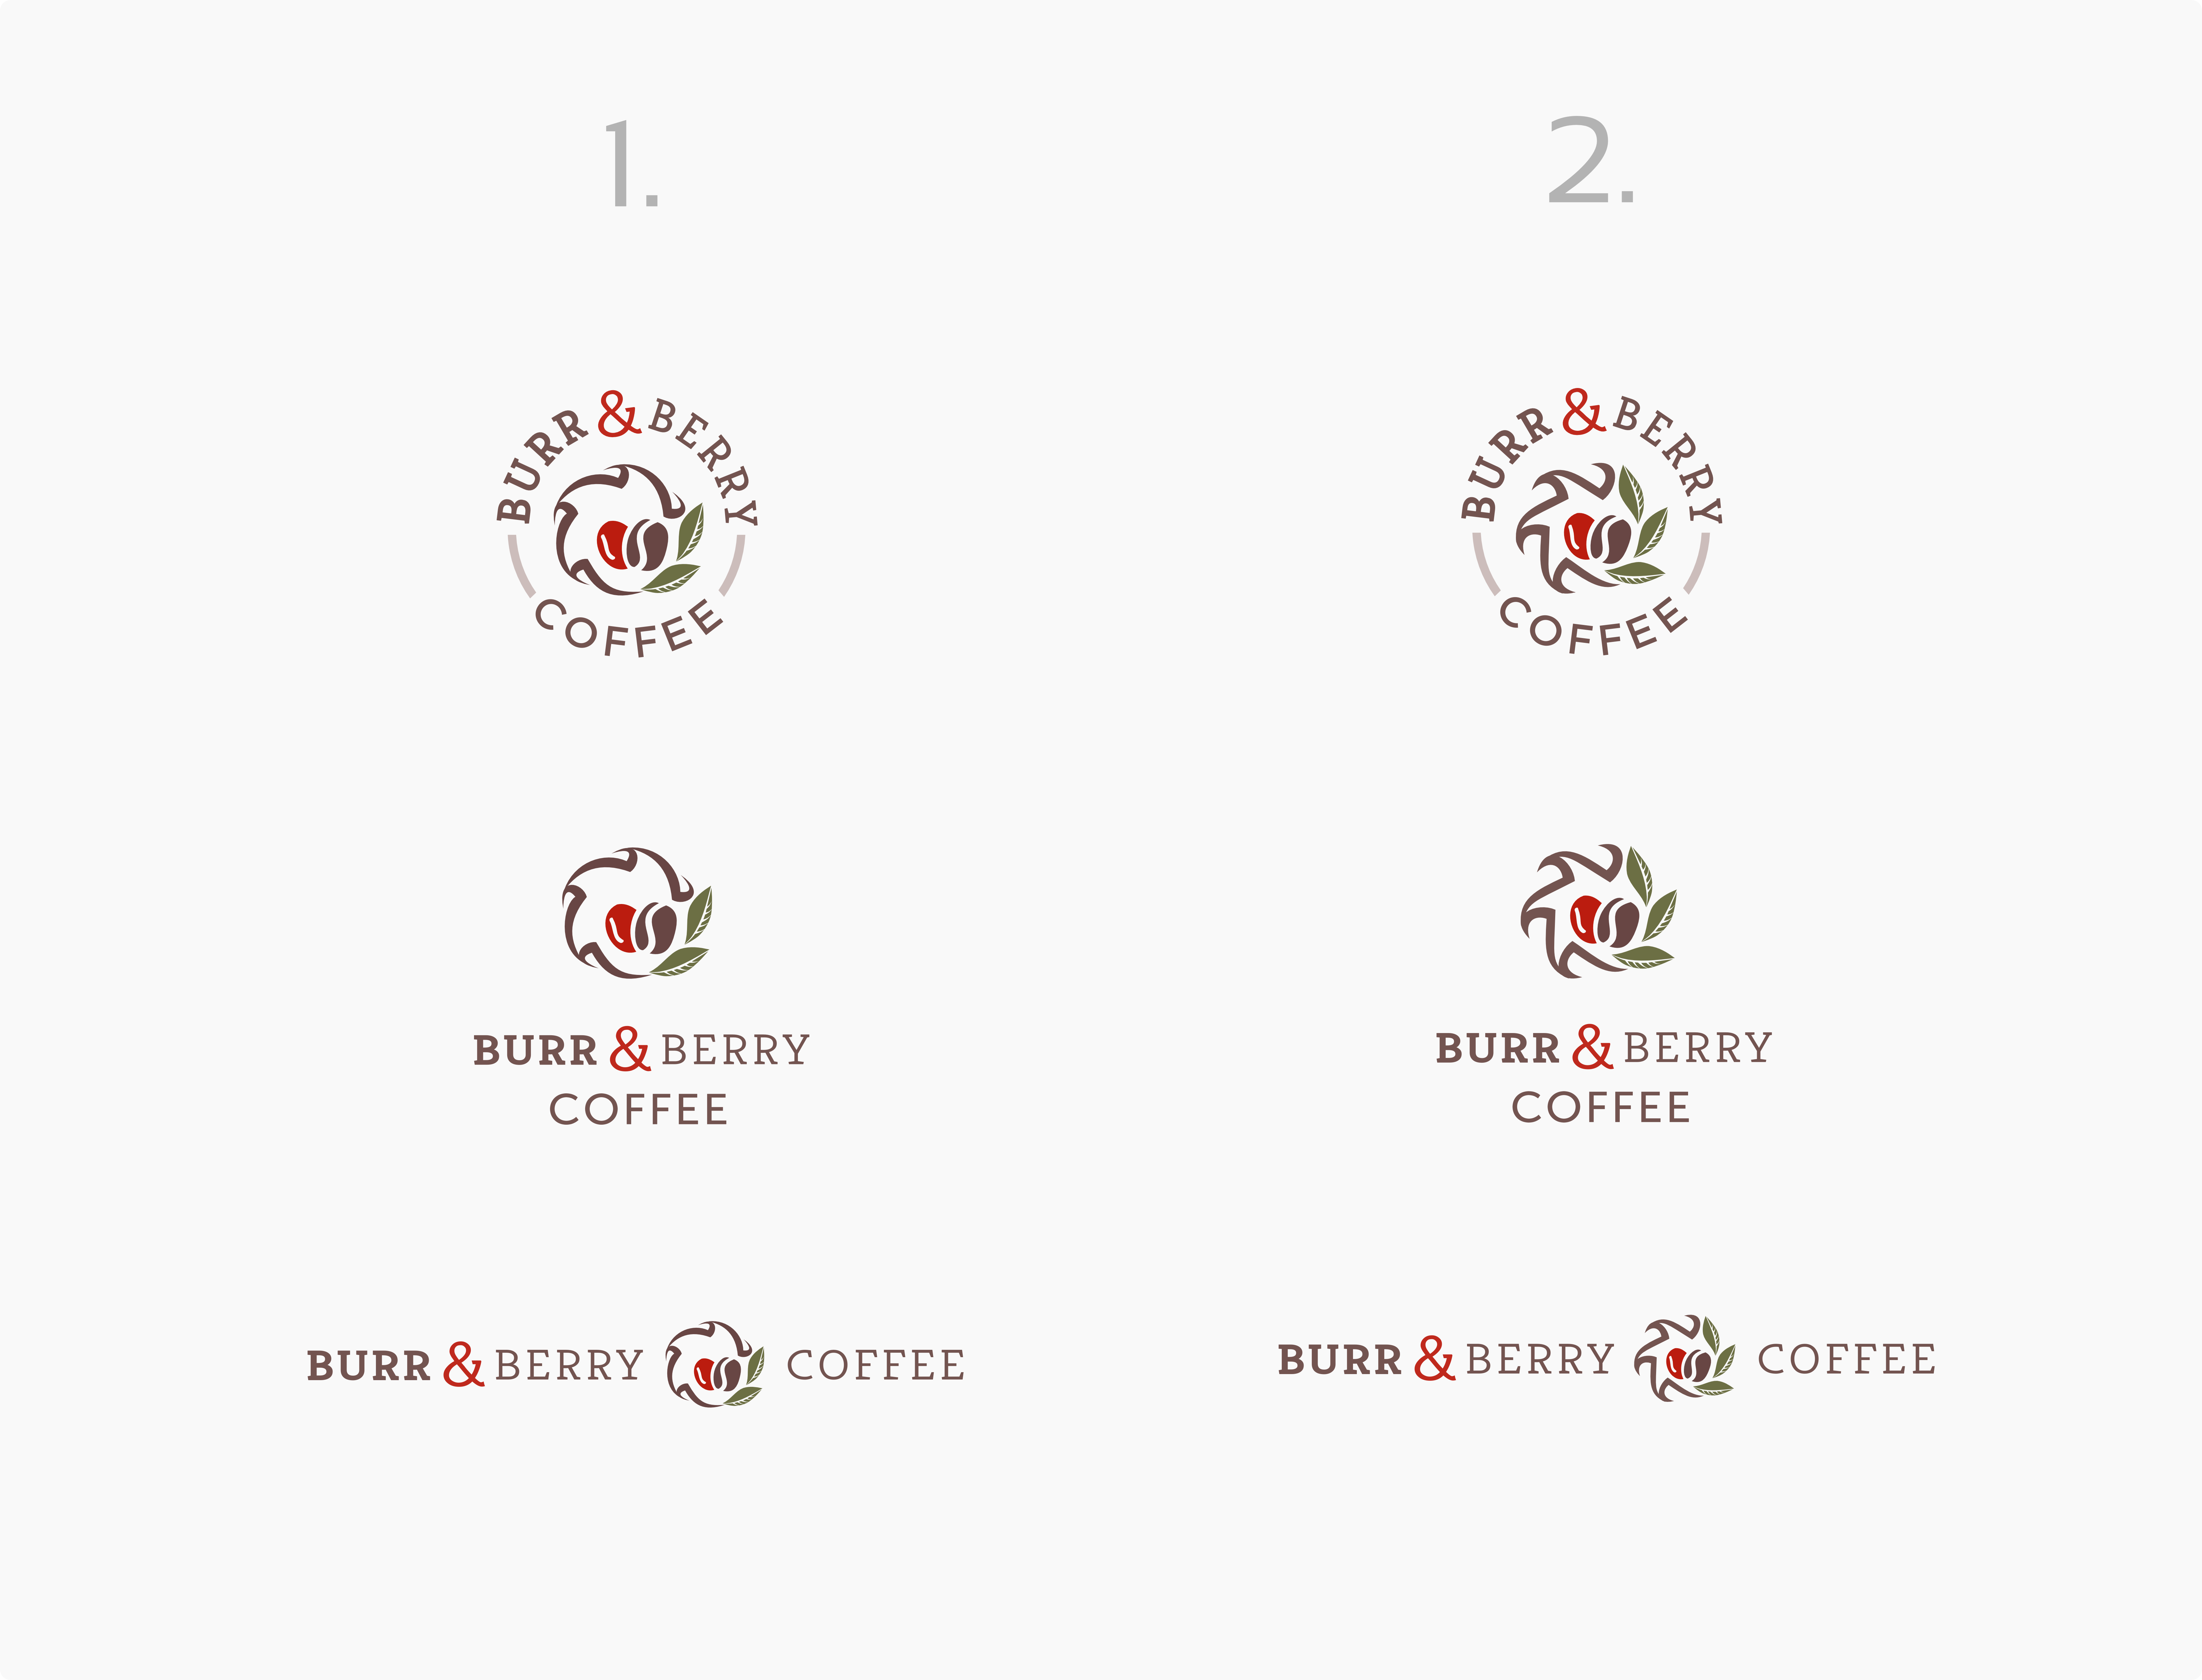 Help us bring Drive Thru Coffee to the SE US with a High Qual/Vintagey/Hipster brand upending drive-thru expectations